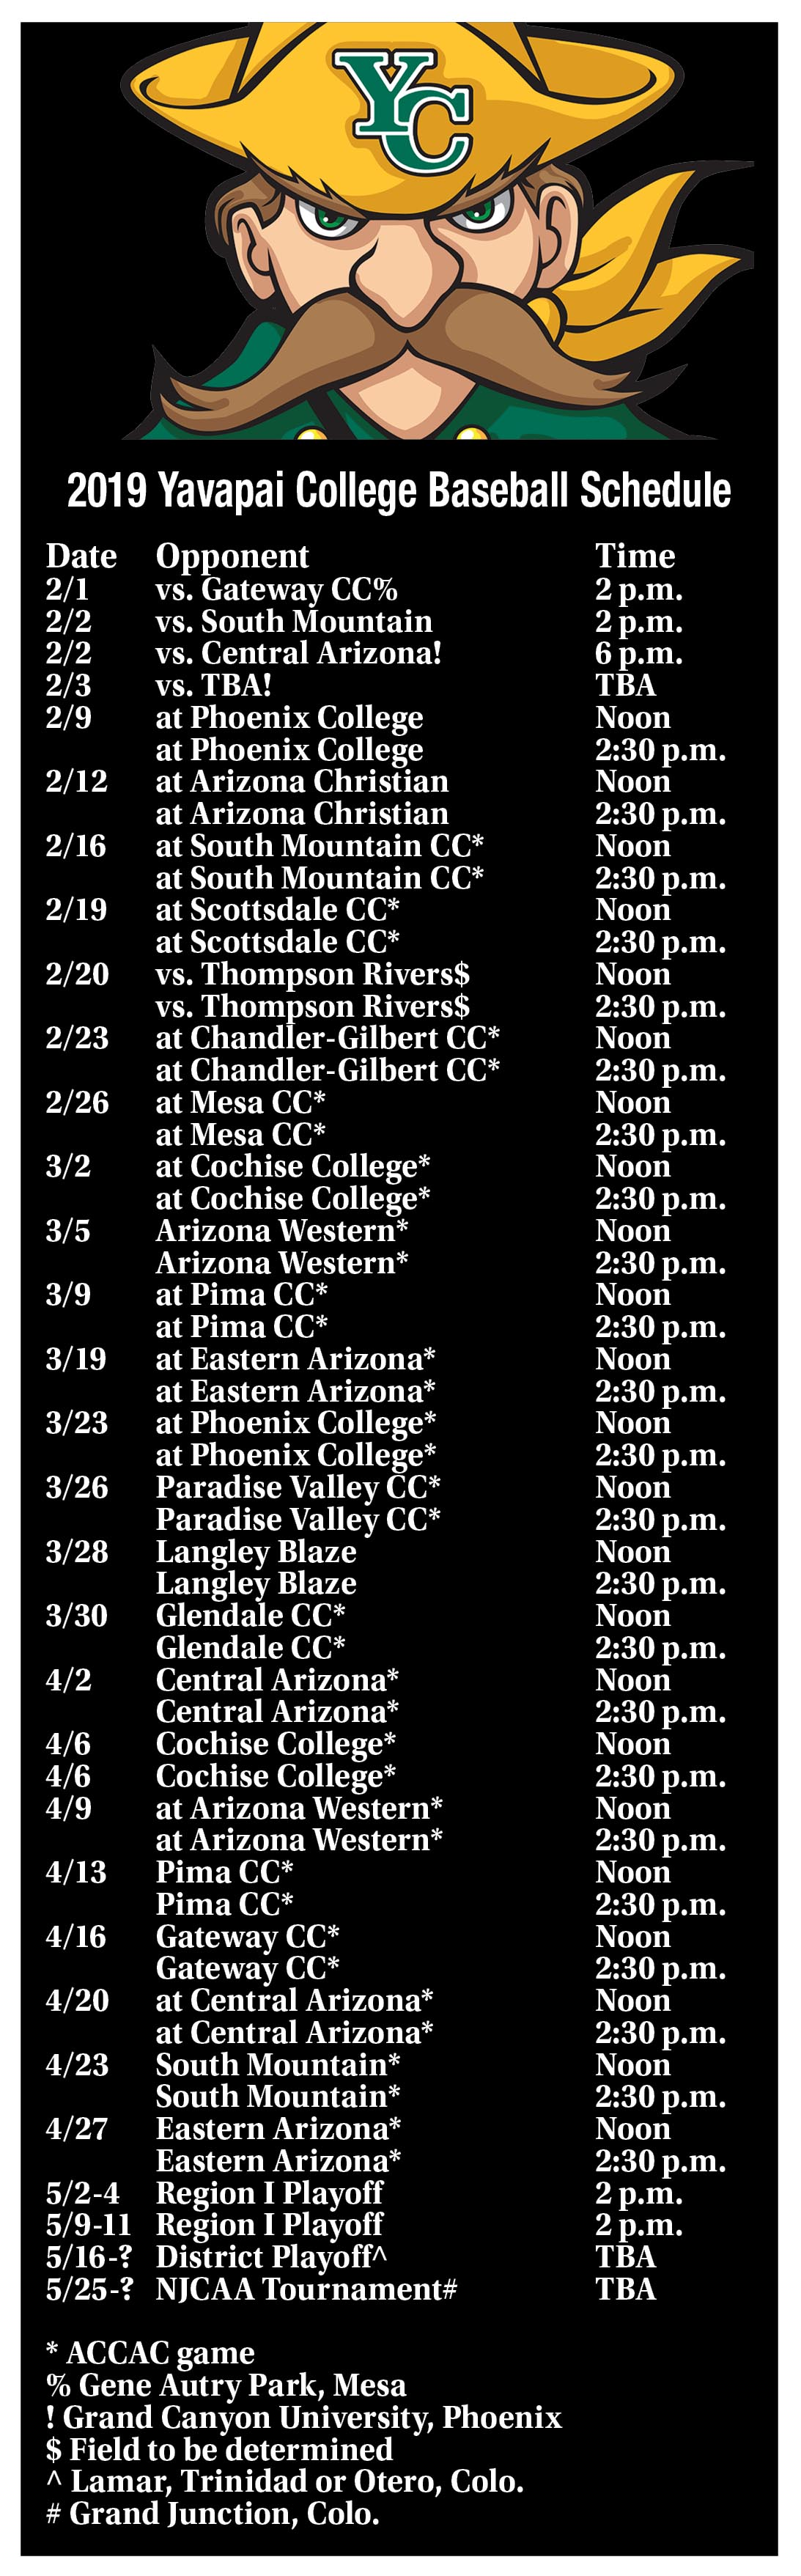 2019 Yavapai College Baseball Schedule The Daily Courier